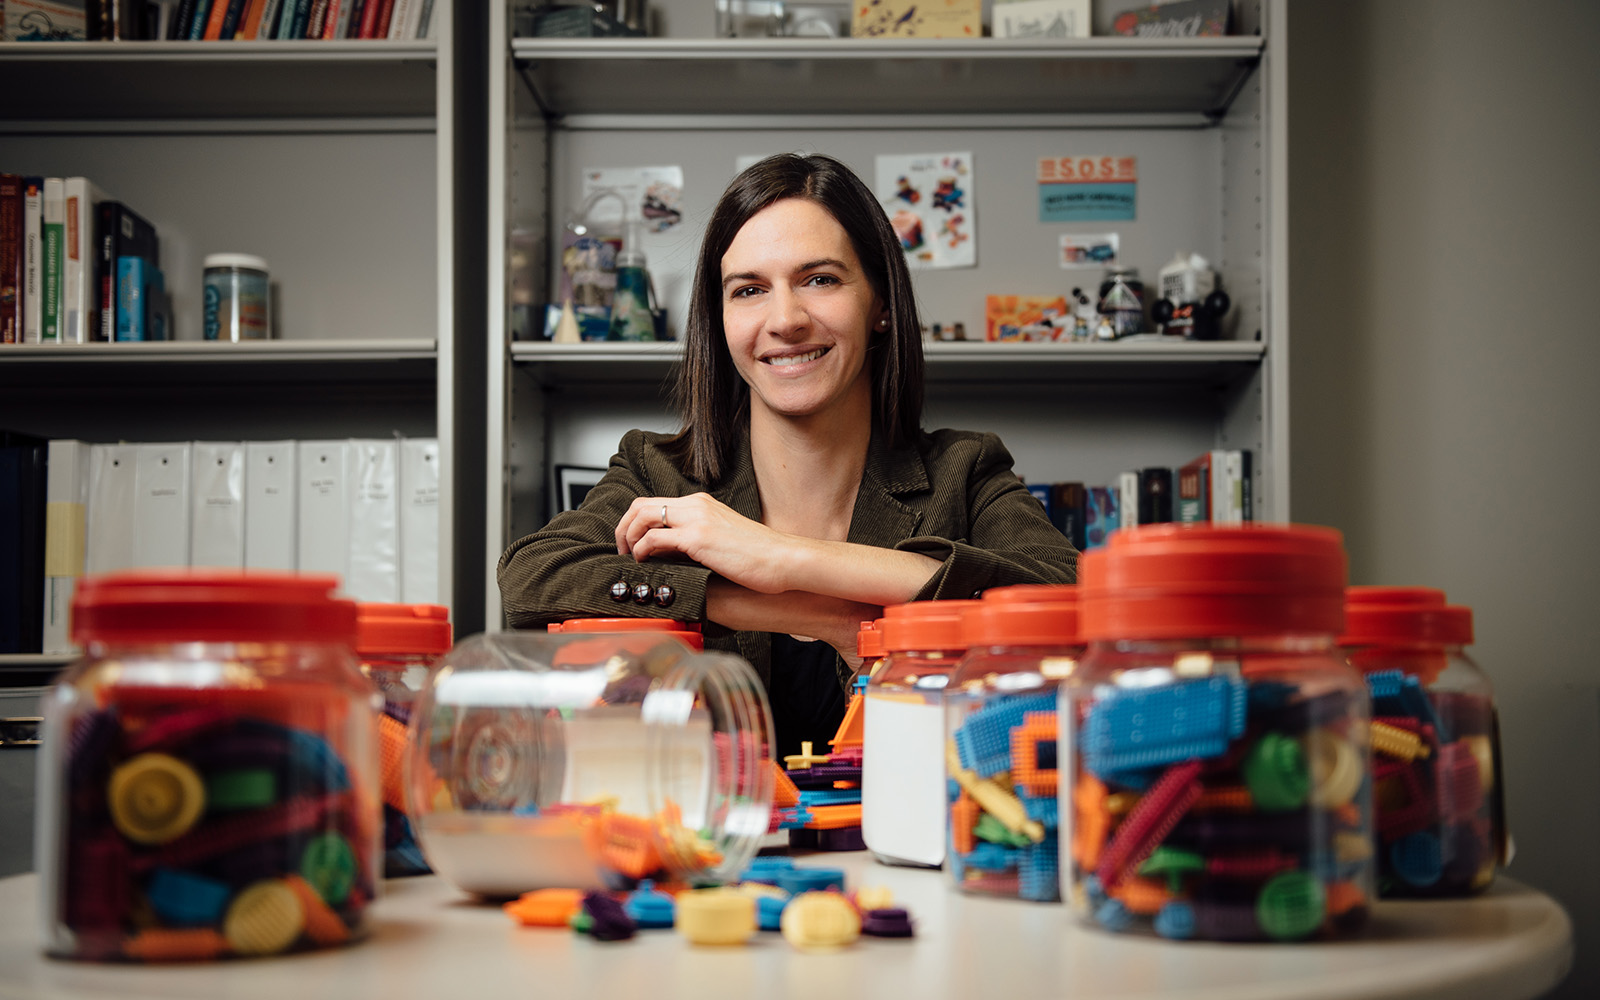 In their studies, UConn marketing professor Kelly Herd (pictured, above) and Ravi Mehta of the University of Illinois at Urbana-Champaign, ask participants to design a child's toy, select ingredients for a new kids' cereal, and redesign a grocery cart for the elderly. Each time, the group that produced the most original products was the one instructed to imagine the target consumers' feelings before beginning the task. (Nathan Oldham/UConn School of Business)